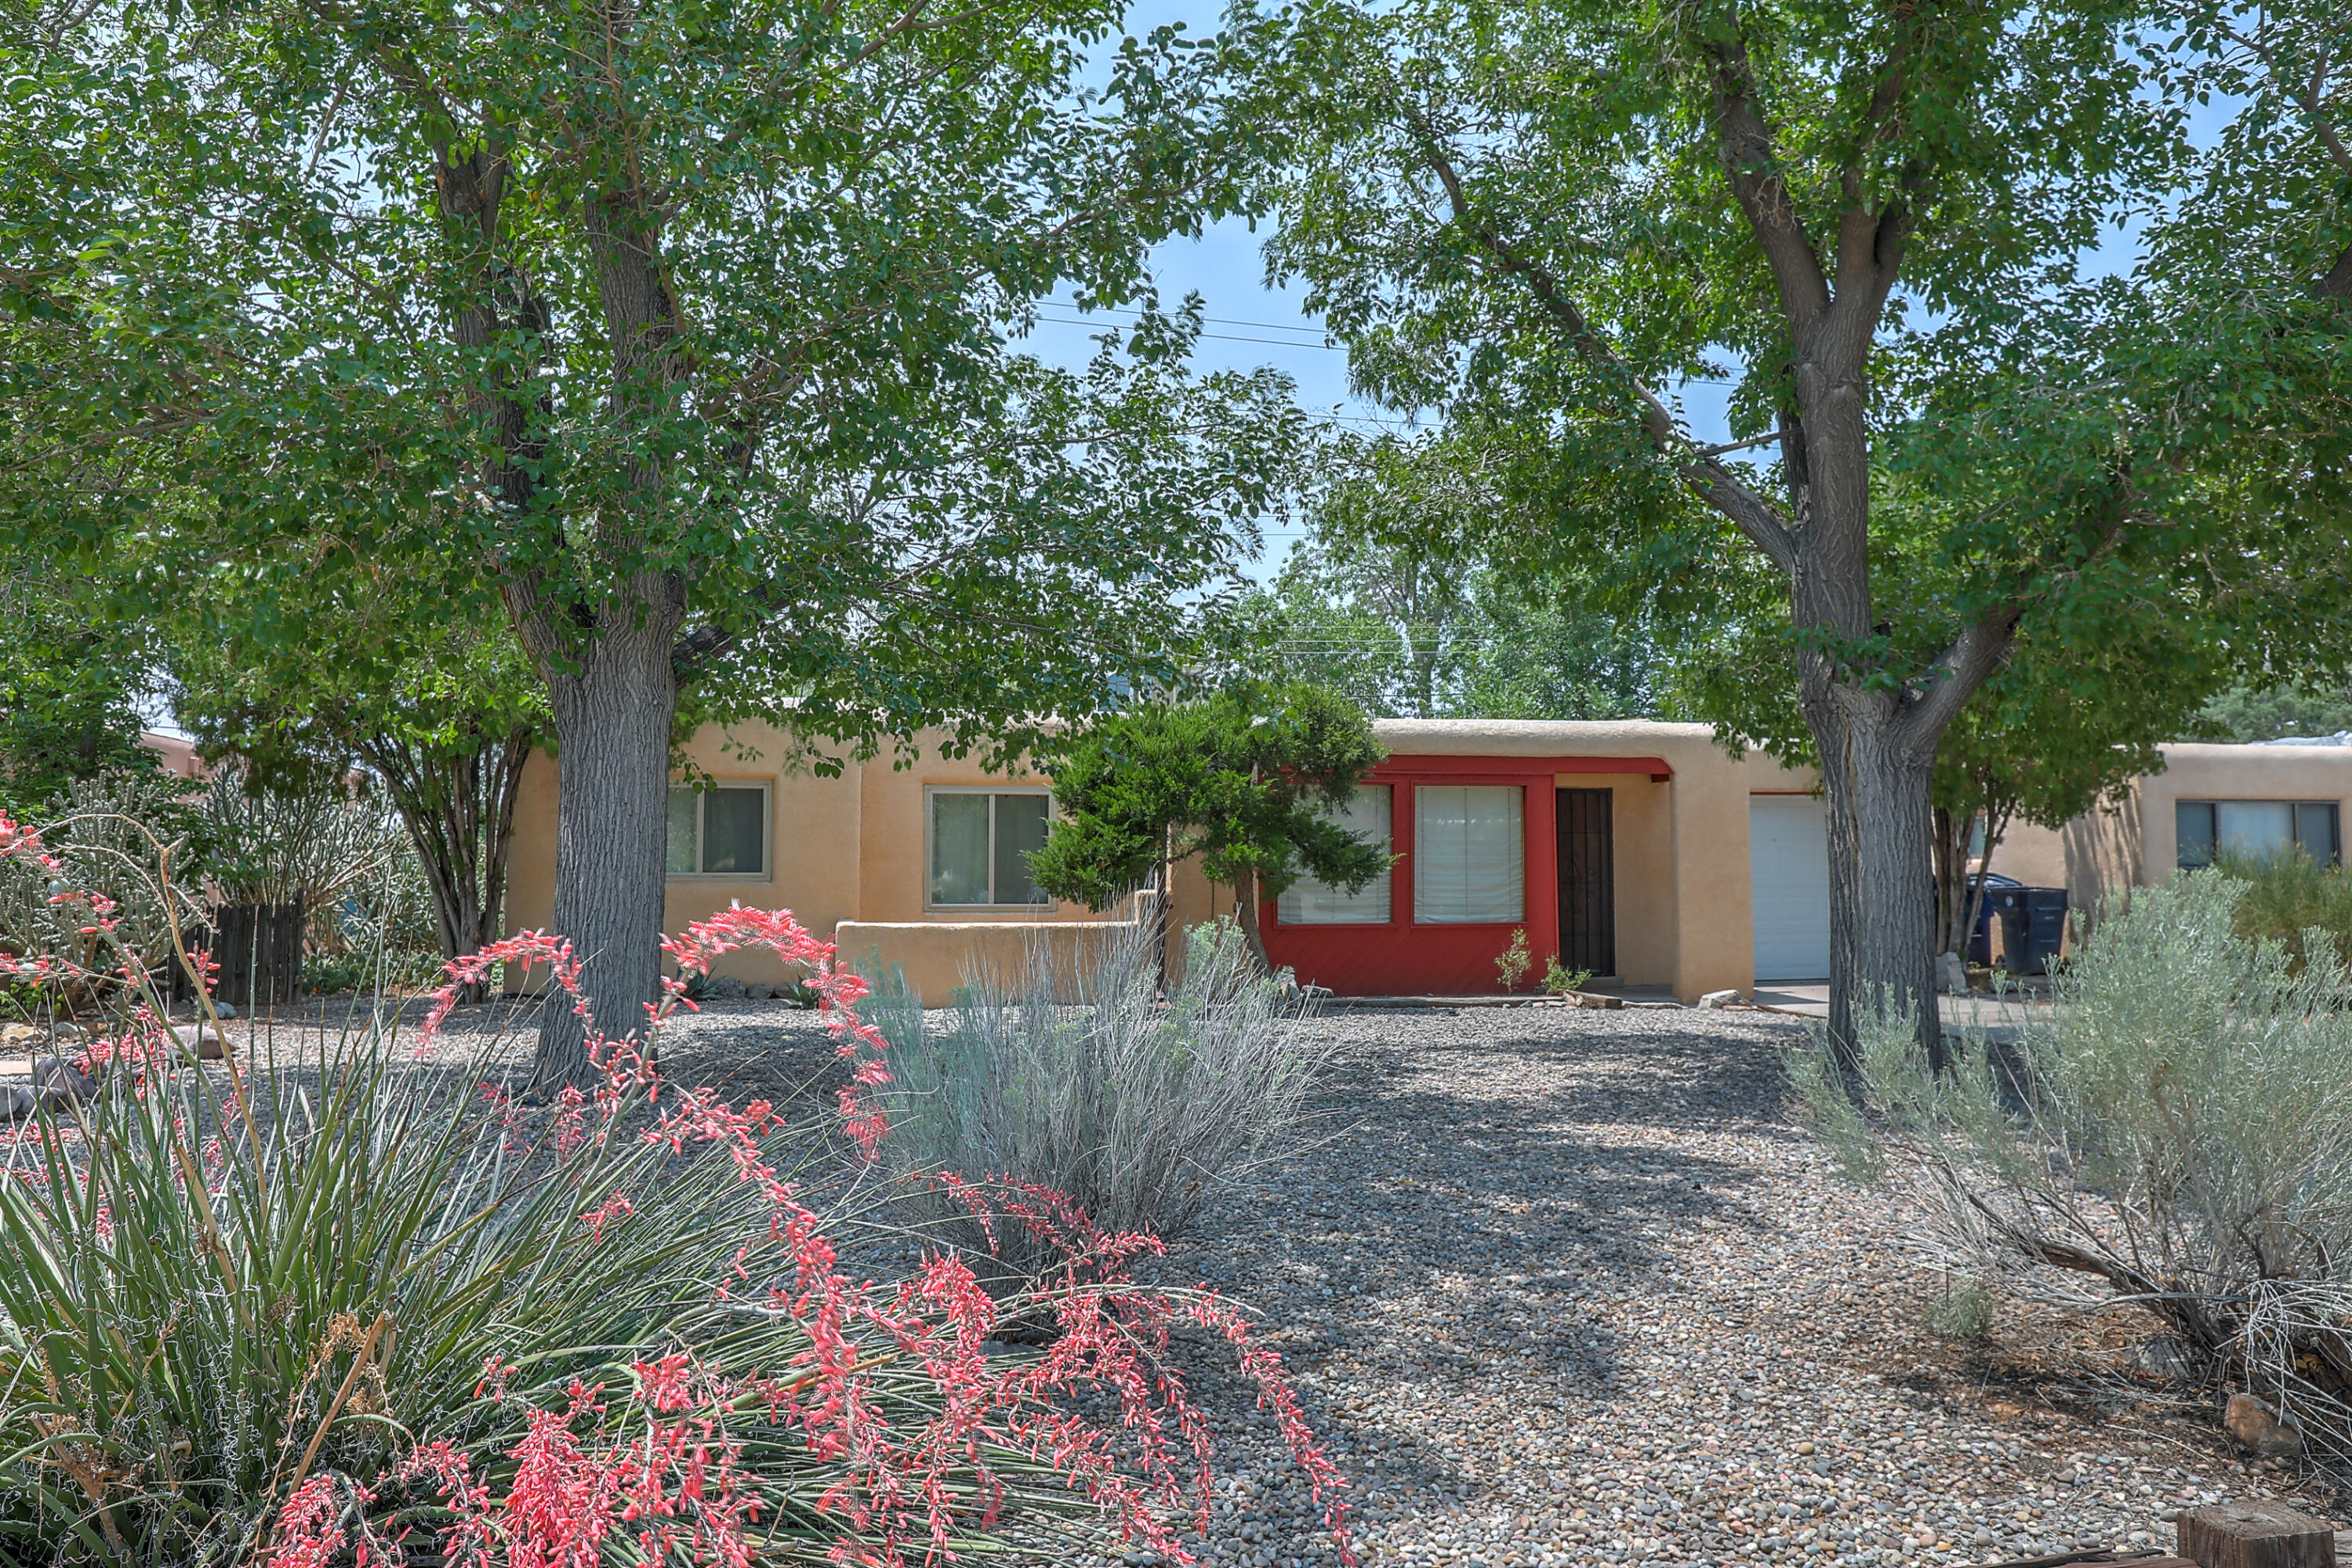 Fabulous Fairgrounds home with an amazing backyard! Walk to UNM area, State Fair, Sprouts, tons of parks, and so much more. Featuring 3 bedrooms, 1.75 bathrooms, and a 1 car garage this home as a lot to offer. The spacious living and dining area are flooded with natural light from the large windows. The kitchen has plenty of storage space too.  Kick back and relax in the grassy backyard, its a great entertainment space year round with the covered patio.